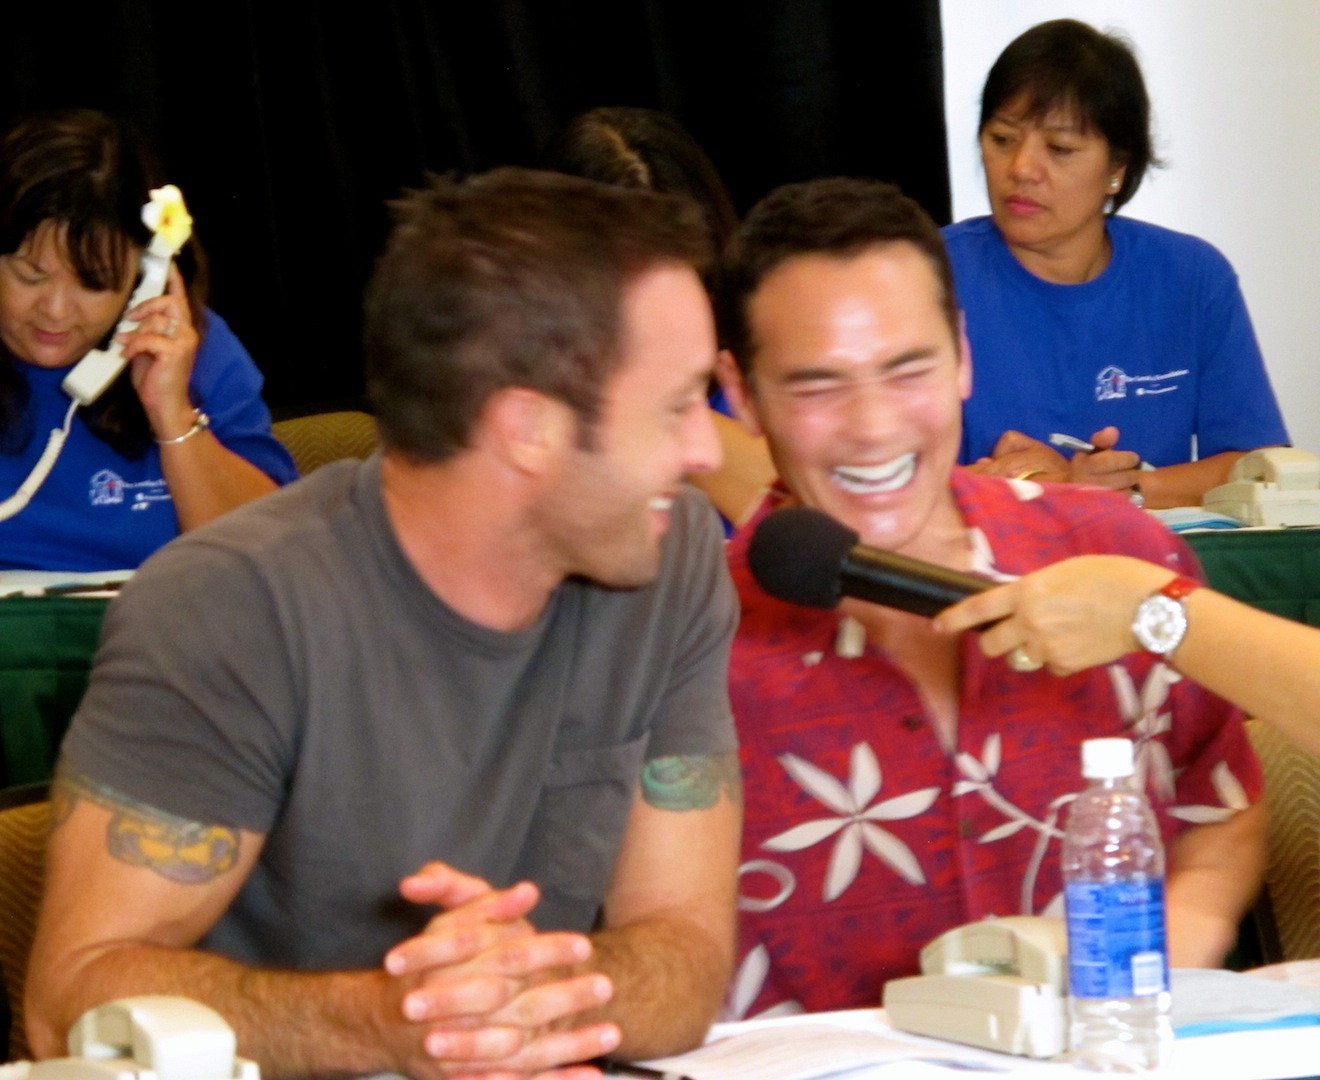 Alex O'Loughlin and Mark Dacascos